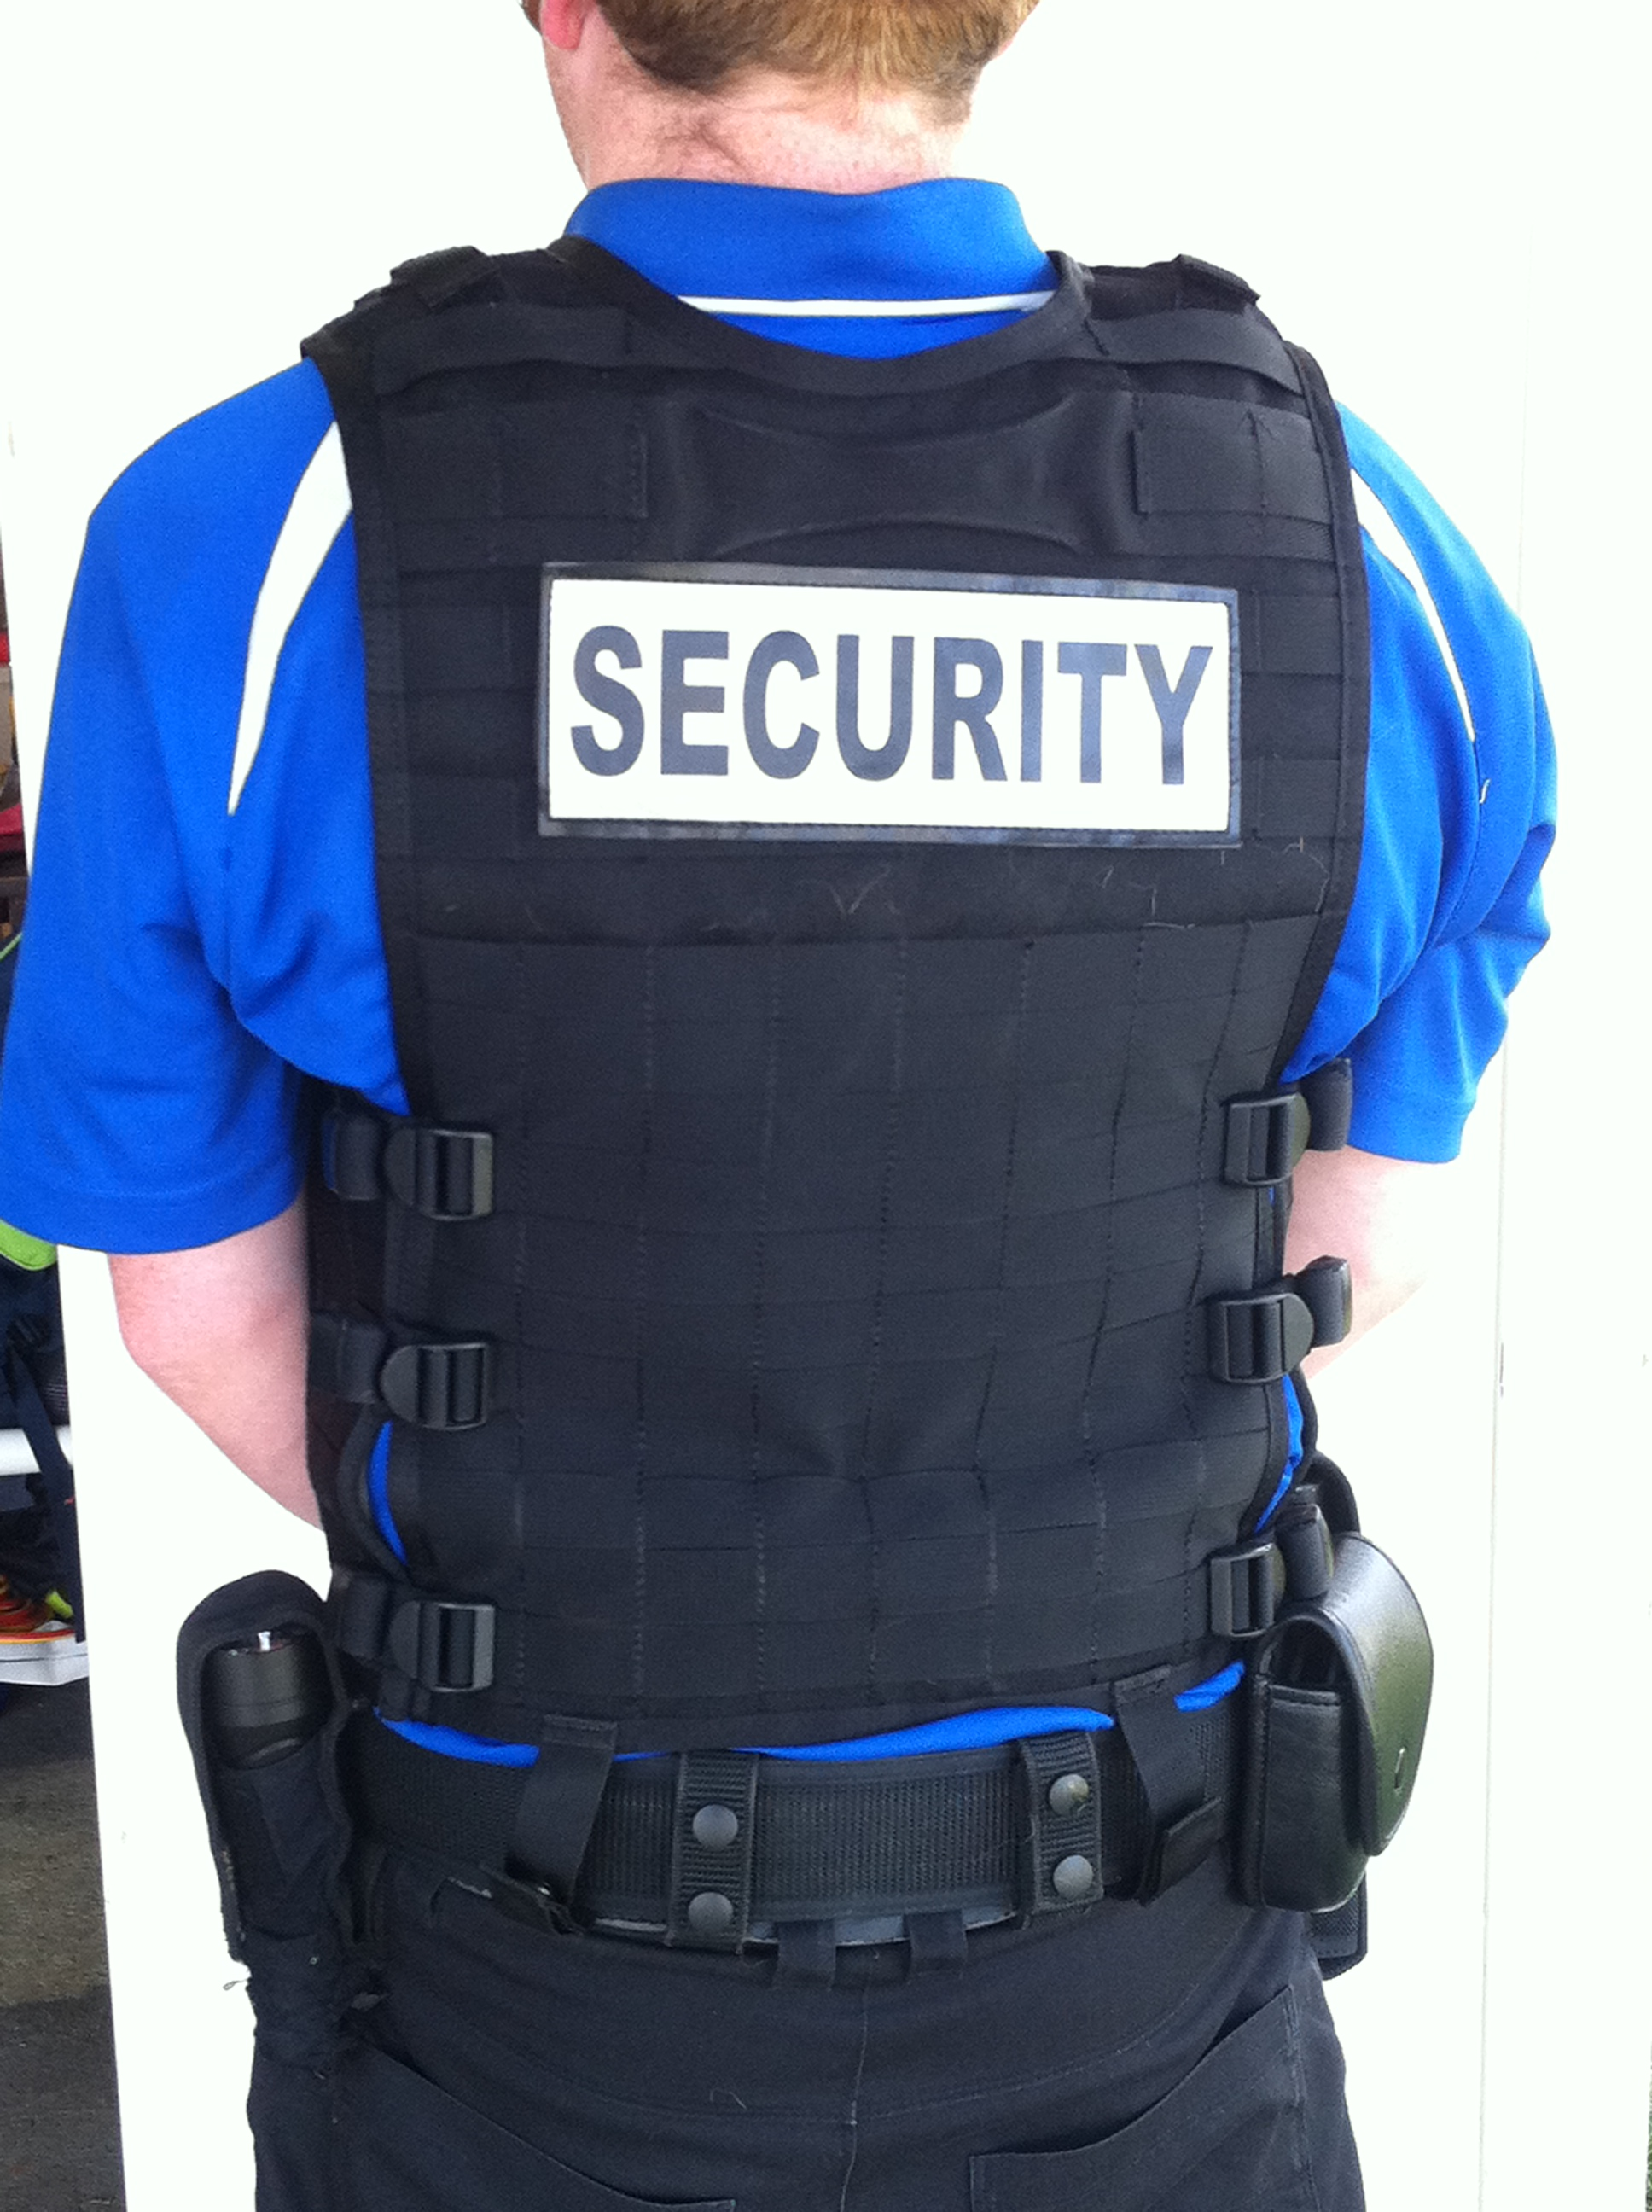 Security Officer Brisbane Queensland